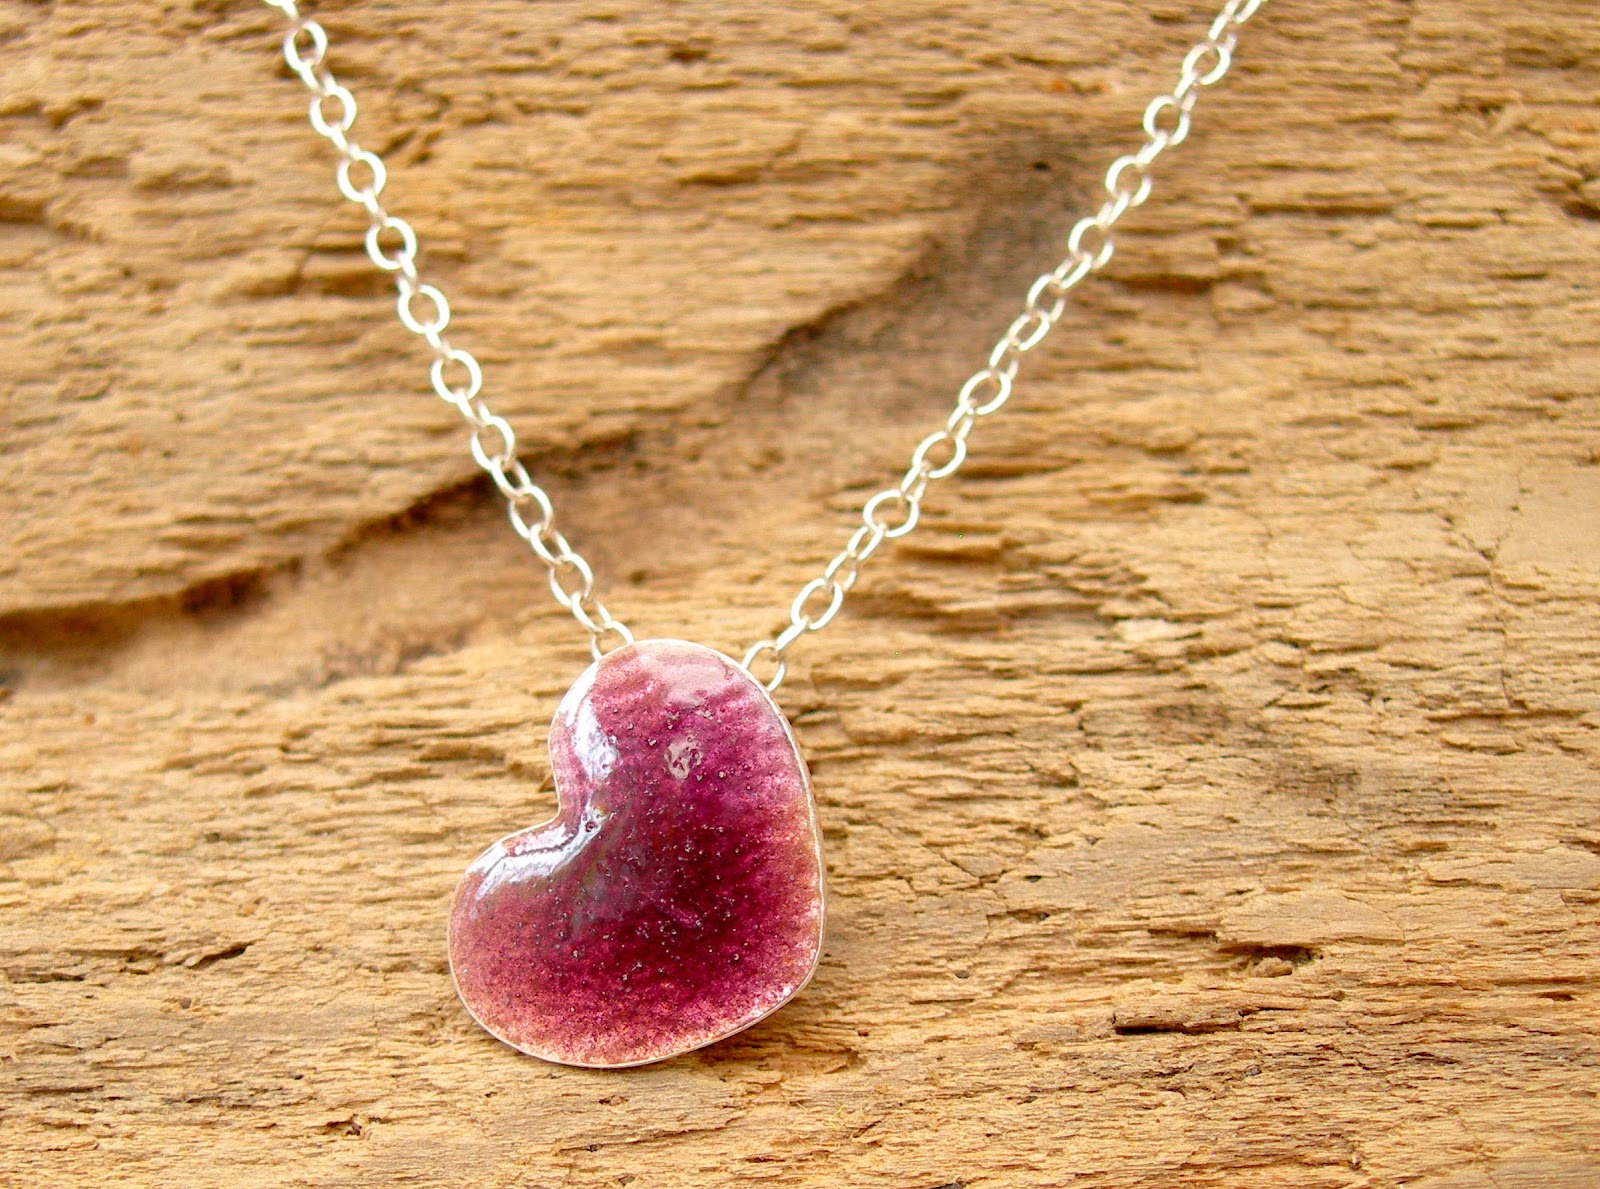 Silver Heart Pendant with Blackberry Enamel